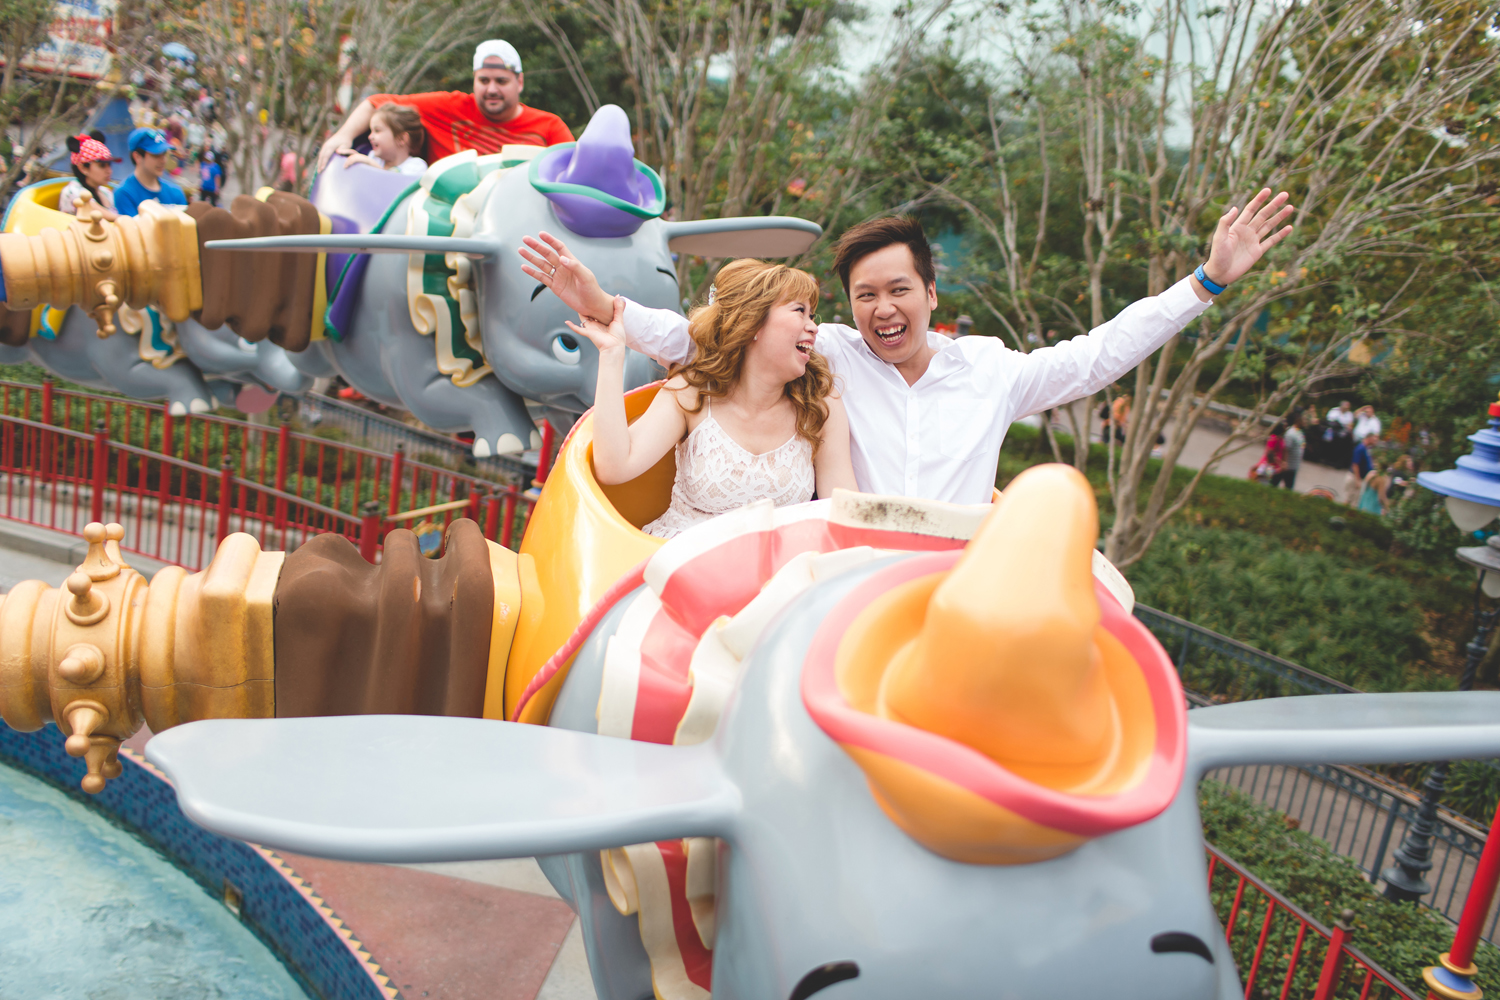 Disney Honeymoon session - Disney Engagement Photos - Disney Wedding Photographer - Destination Orlando Wedding Photographer - Jaime DiOrio (37).jpg